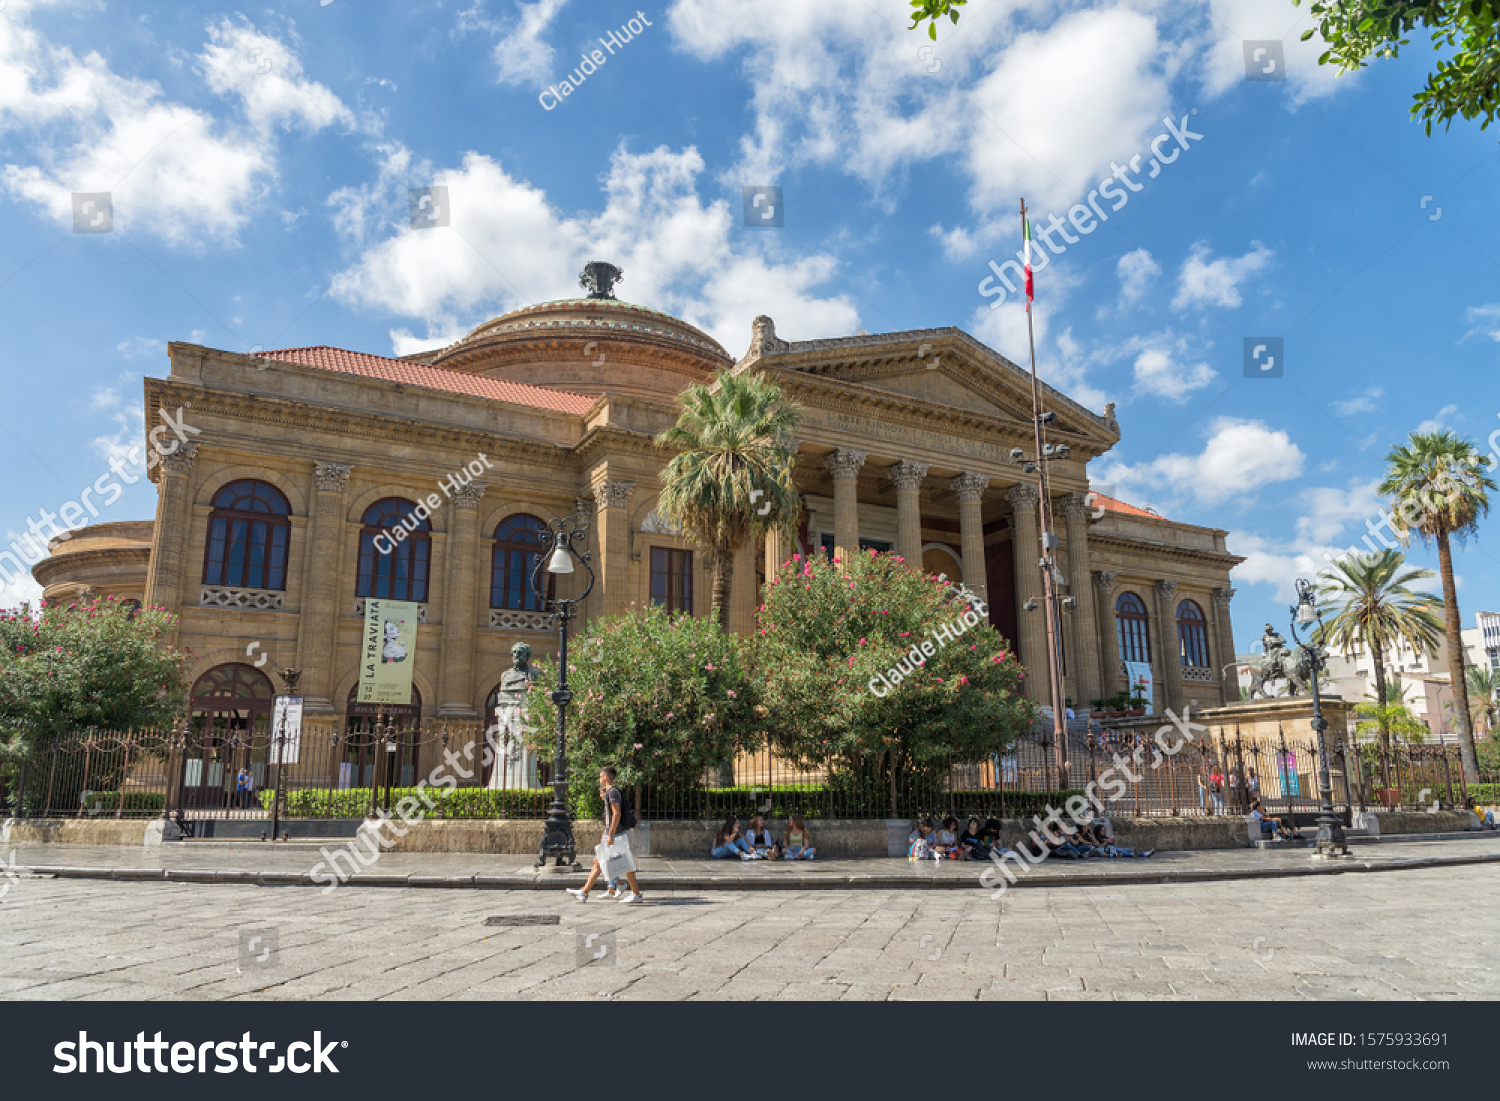 "PALERMO, SICILY, ITALY - SEPTEMBER 27, 2019: The Massimo Theater on ""Piazza Verdi"" in Palermo. It is the largest theater and opera house in Italy. It is a landmark popular with tourists."